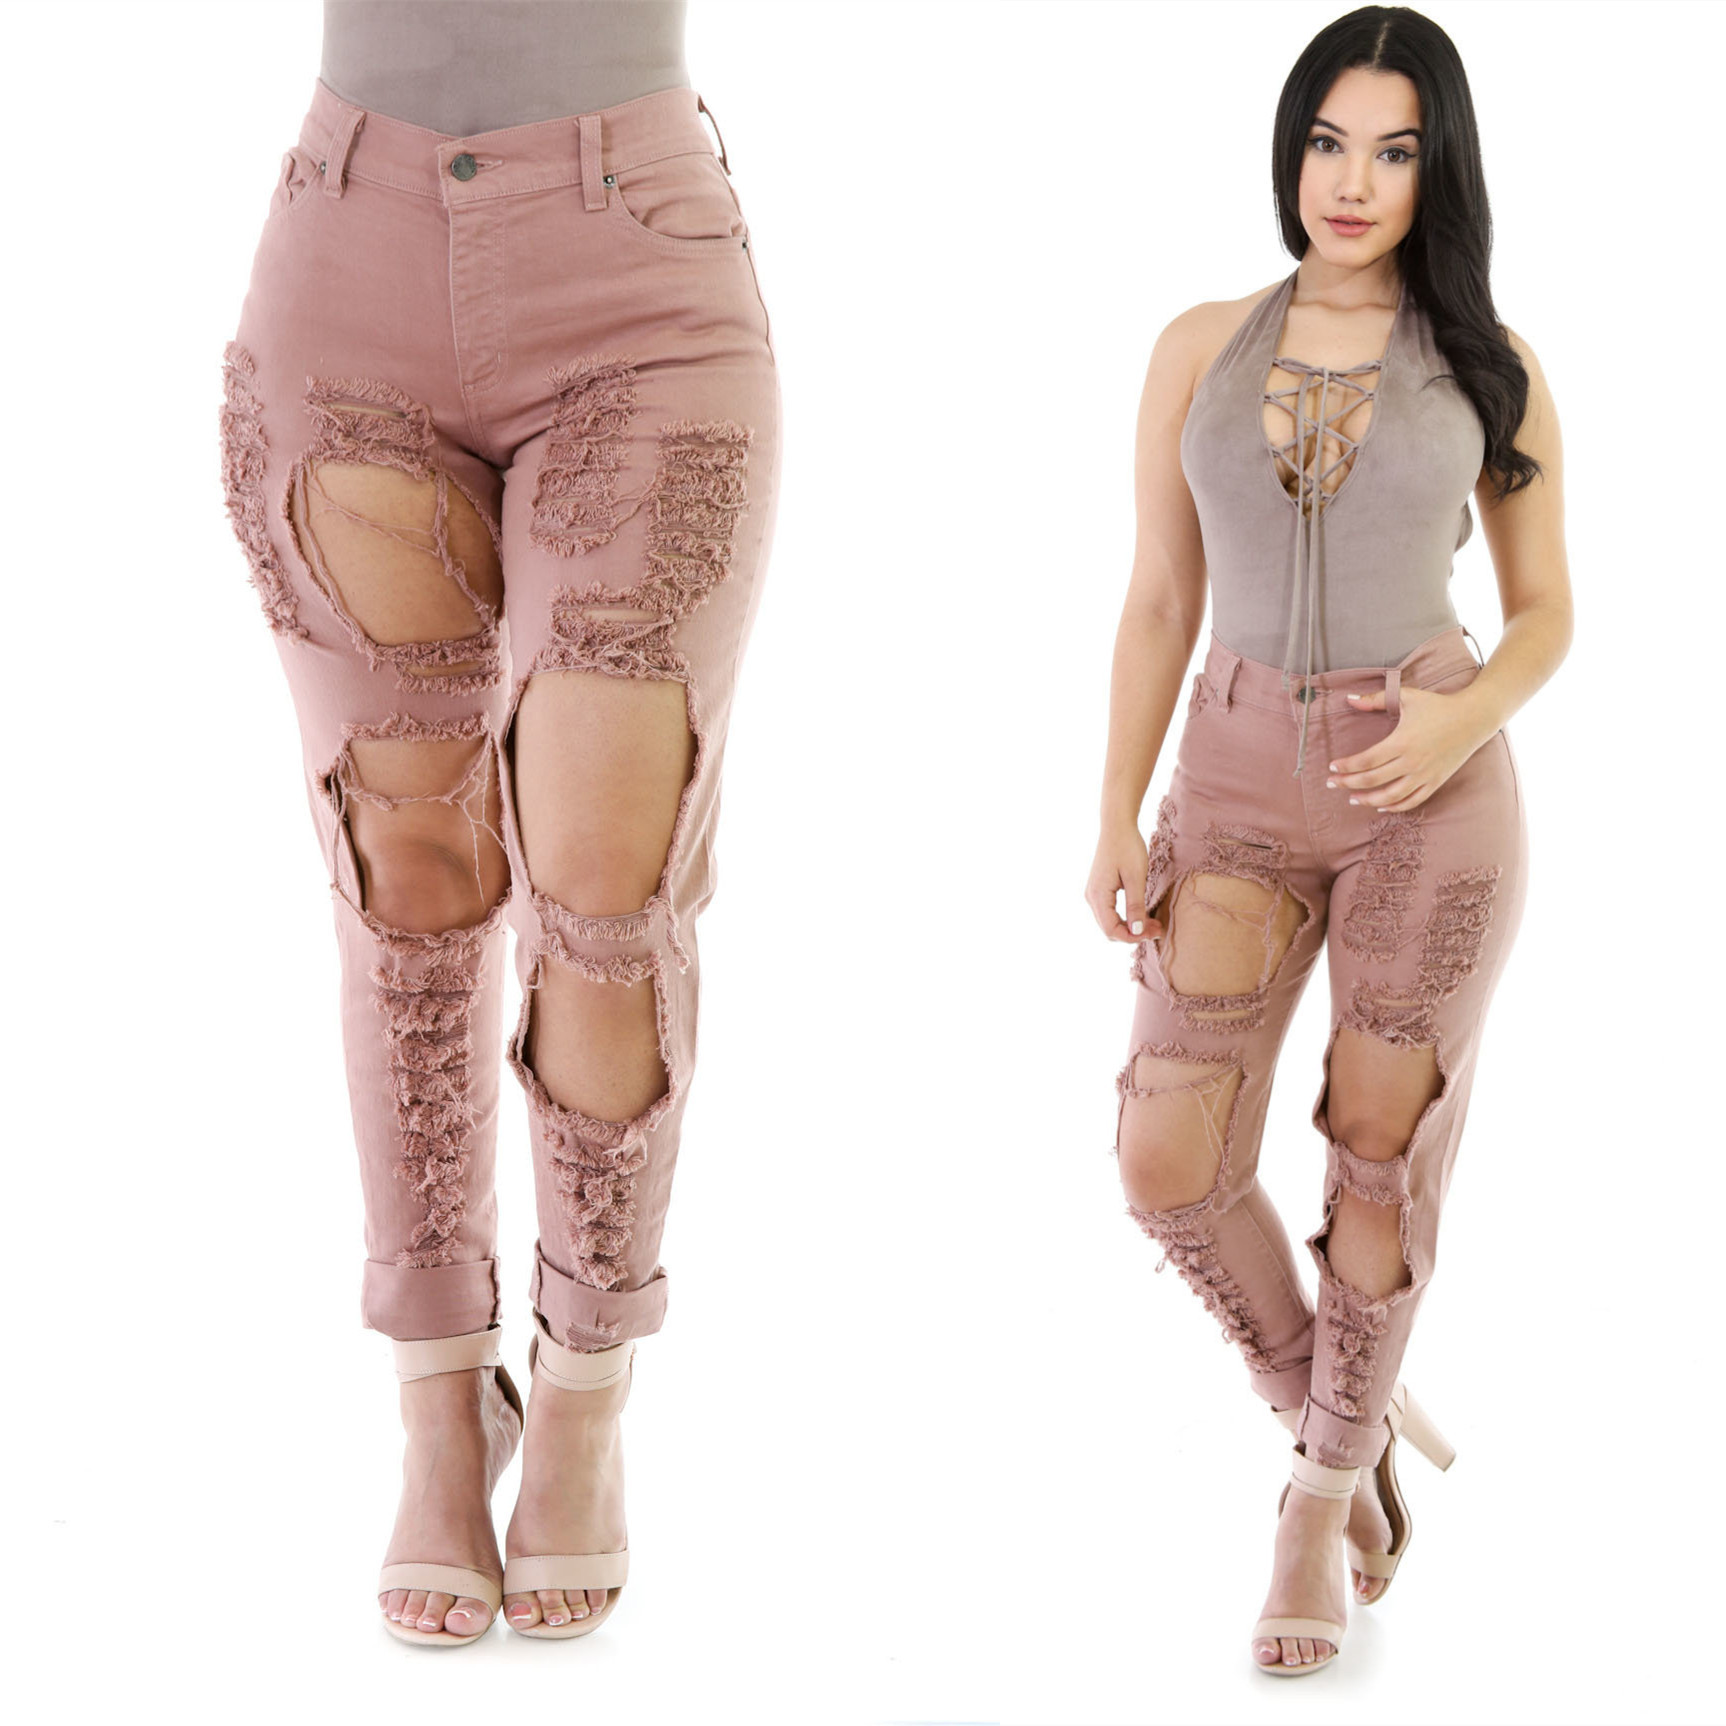 Women 2016 High Waist Reddish Brown Ripped Jeans Woman Skinny Pencil Pants Slim Trousers for Women Elastic Women's Jeans Hole ripped jeans for women 2016 high waist woman skinny pencil pants sexy holes black ripped jeans slim elastic trousers for women